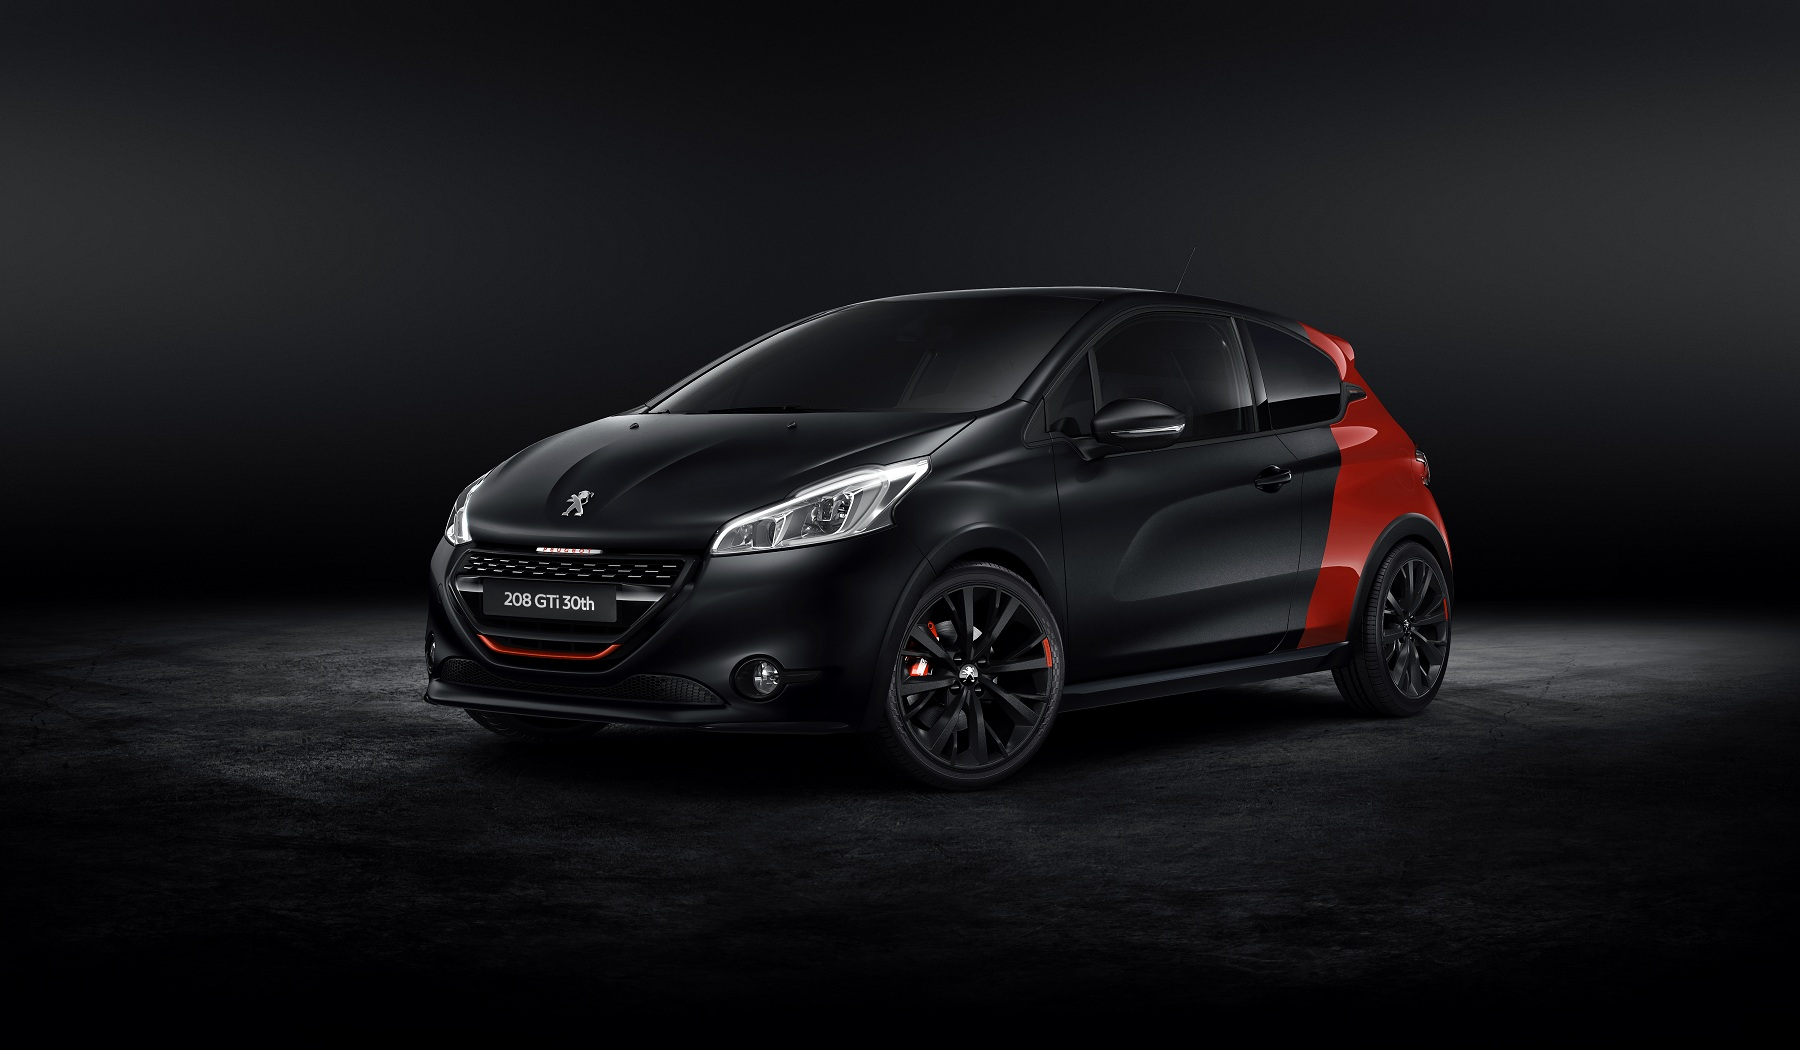 goodwood 2014 nouvelle peugeot 208 gti 30th autoday. Black Bedroom Furniture Sets. Home Design Ideas